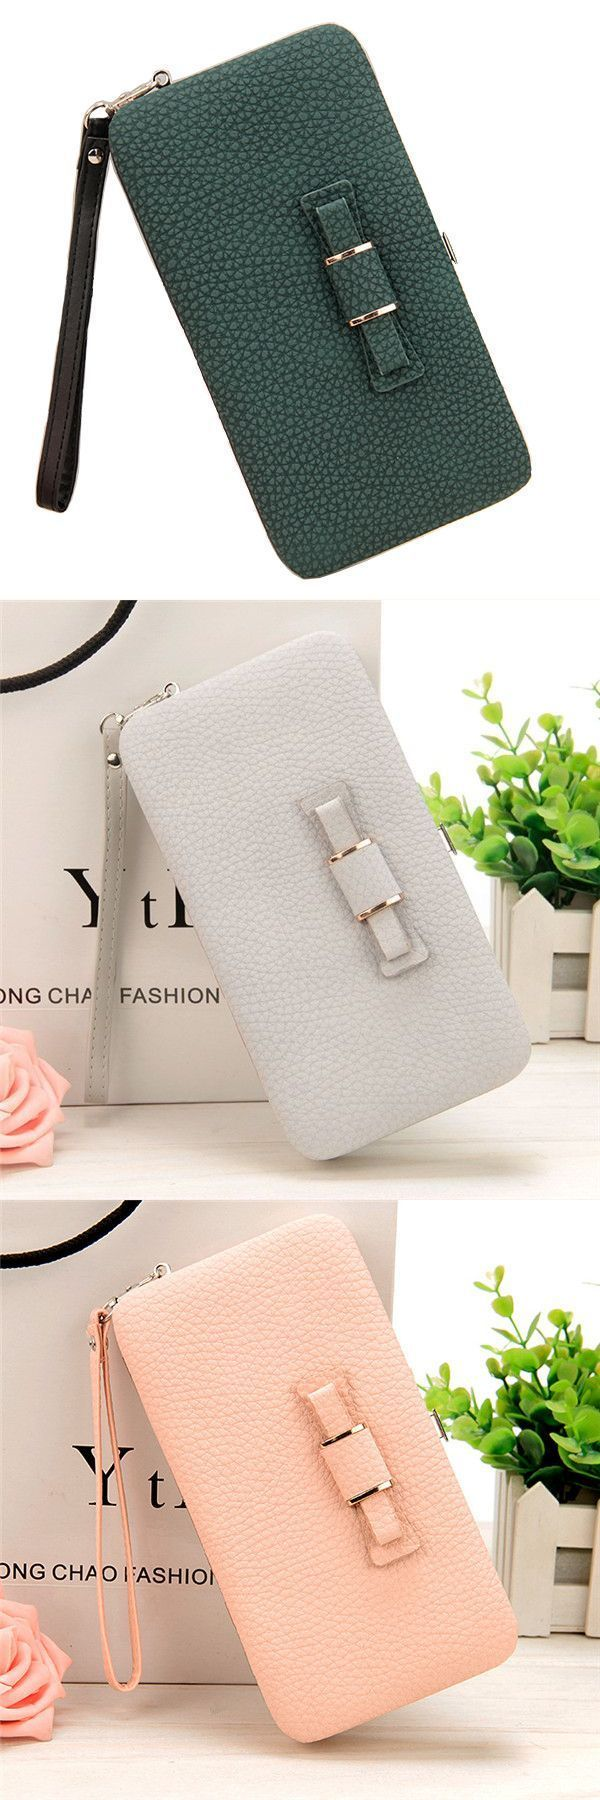 Clutch bags coast bowknot hasp clutches bags portable hasp card holder long wallet 5.5#8221; phone purse for iphone 7plus #clutch #bags #durban #clutch #bags #jcpenney #clutch #bags #under #£10 #clutch #bags #under #10 #pounds